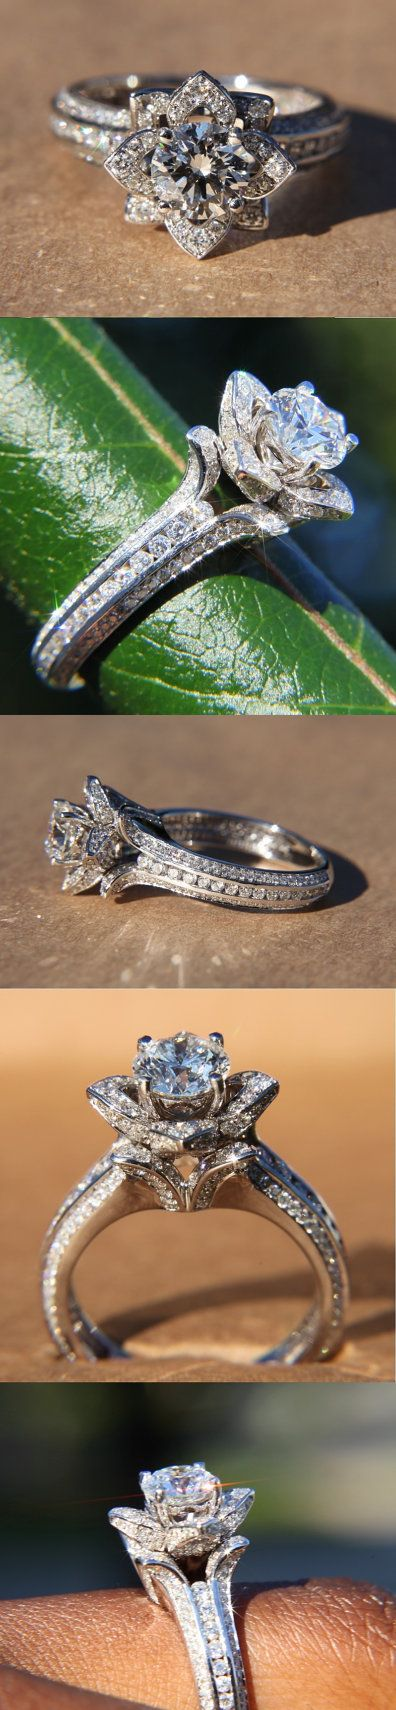 this is my dream ring! just swap out the middle stone for a blue sapphire and I will say yes to ANY man! hahaha